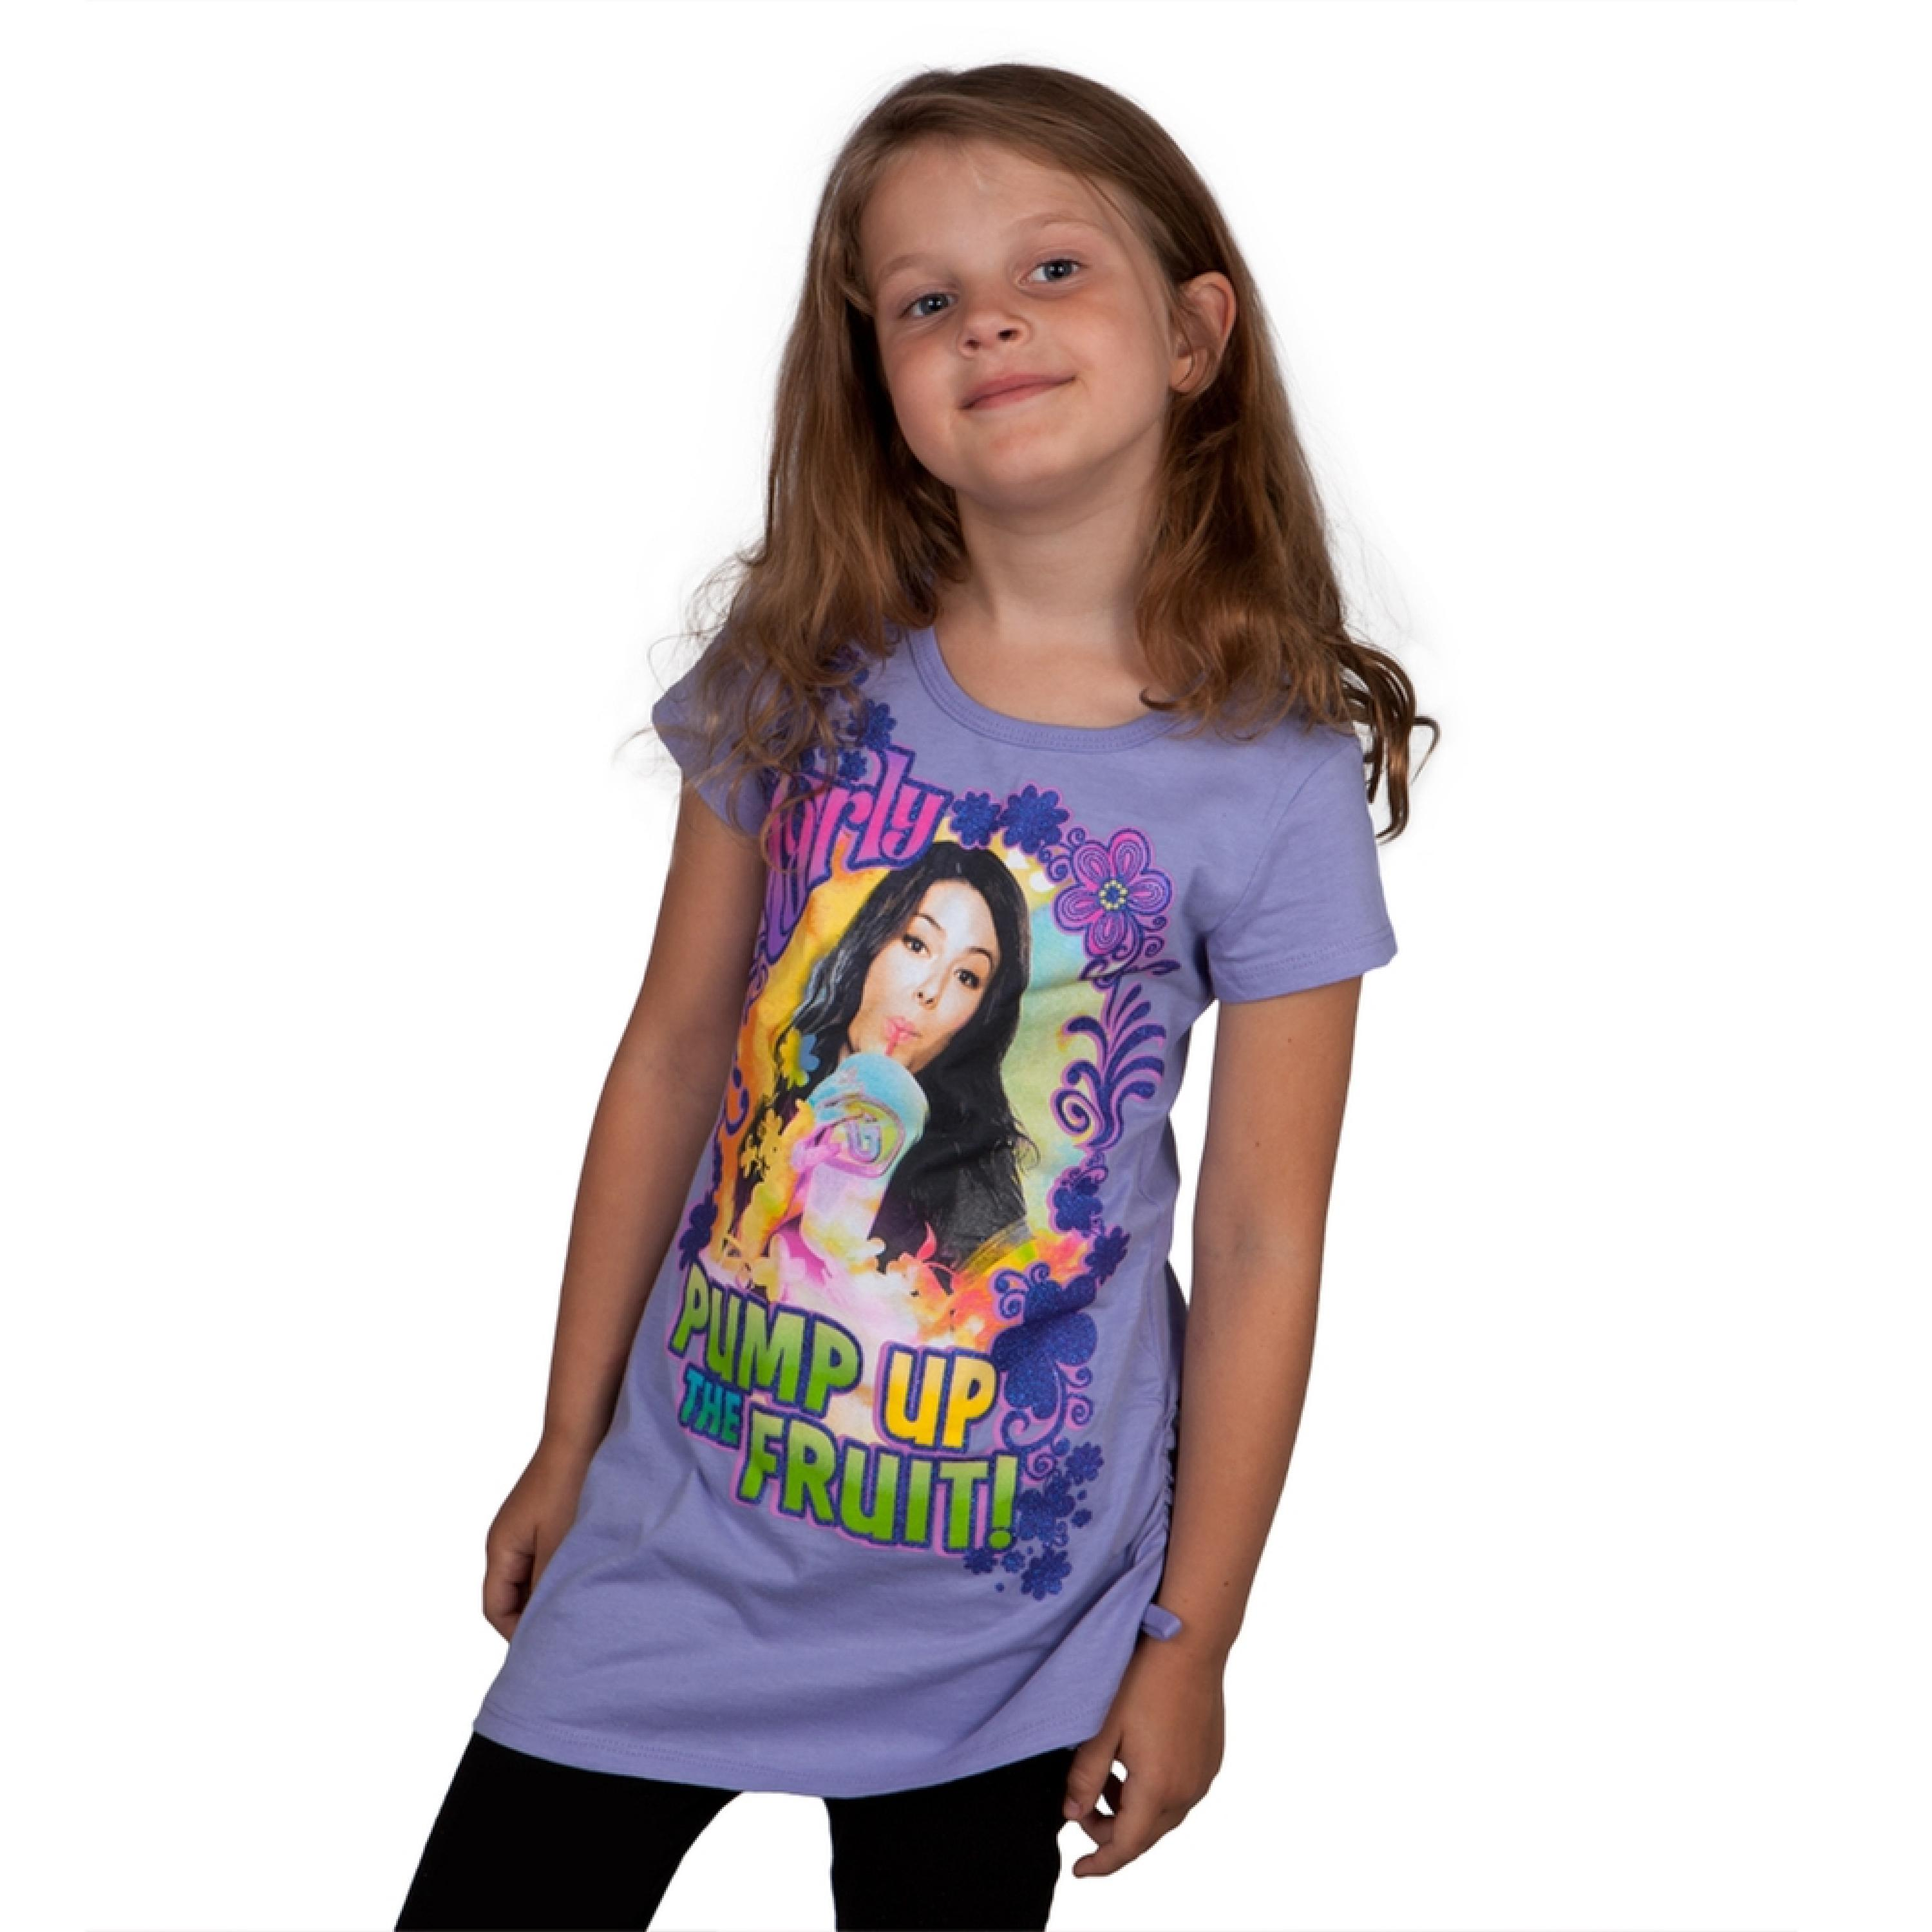 iCarly - Pump Up The Fruit Girls Youth T-Shirt